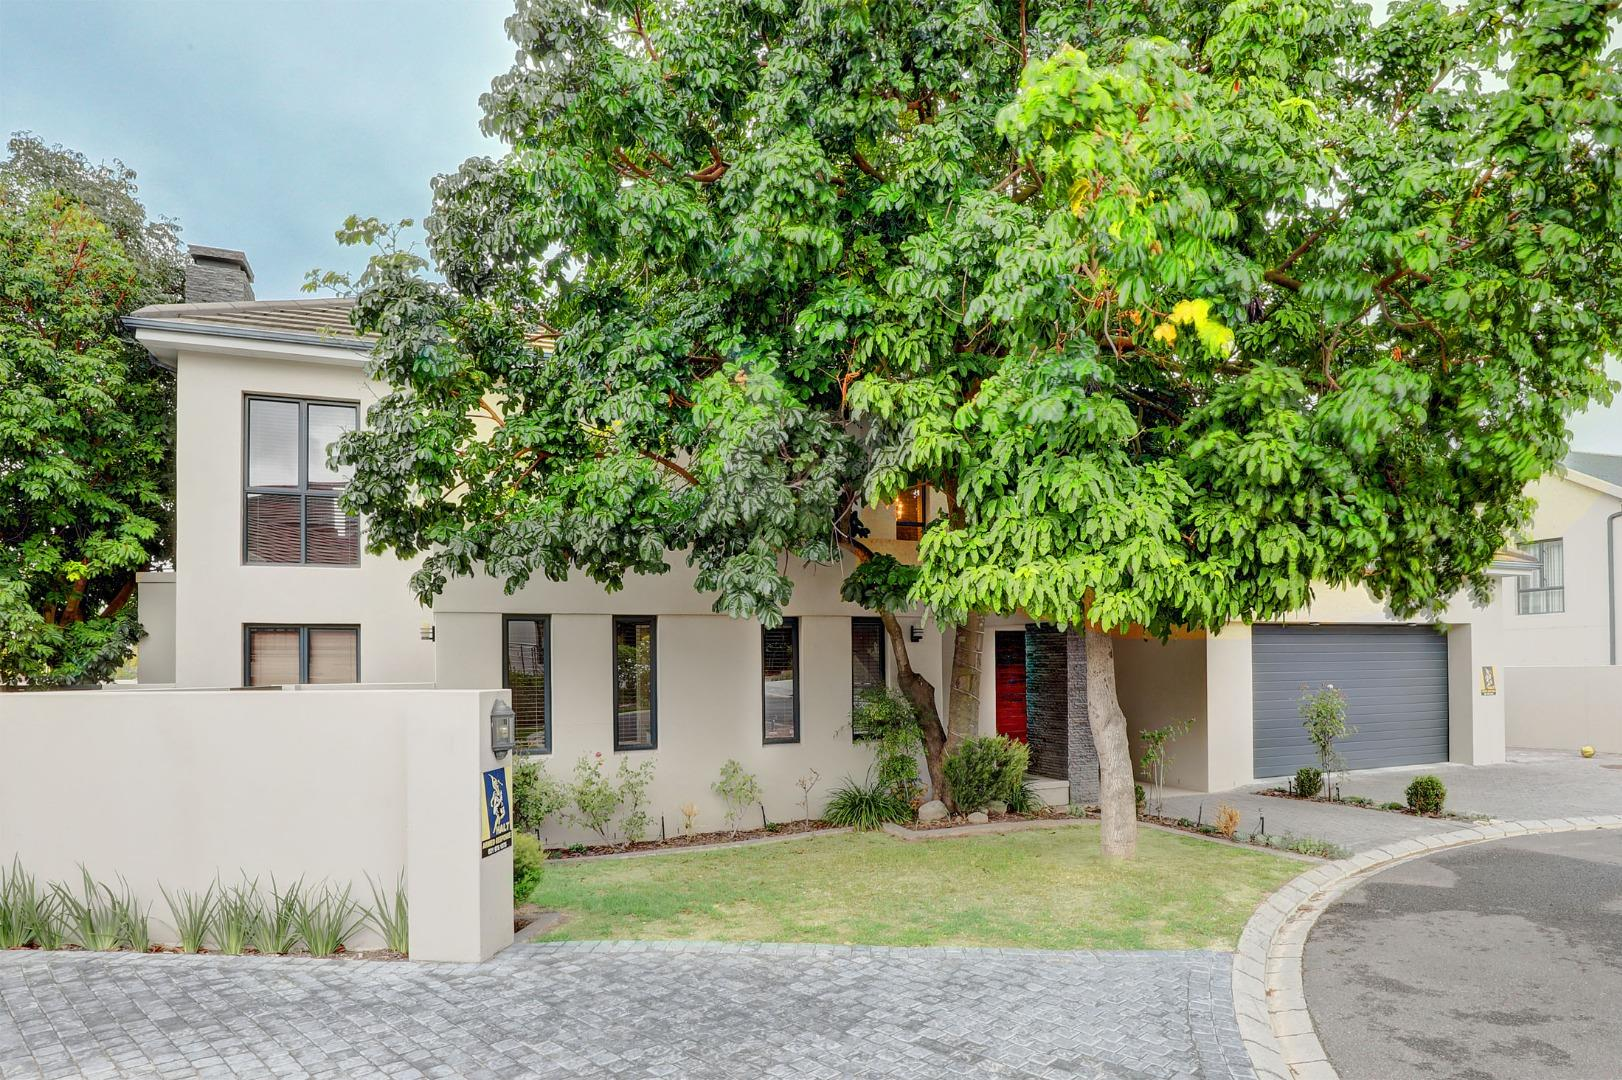 3 Bedroom House for Sale in Eversdal Heights, Durbanville - Western Cape